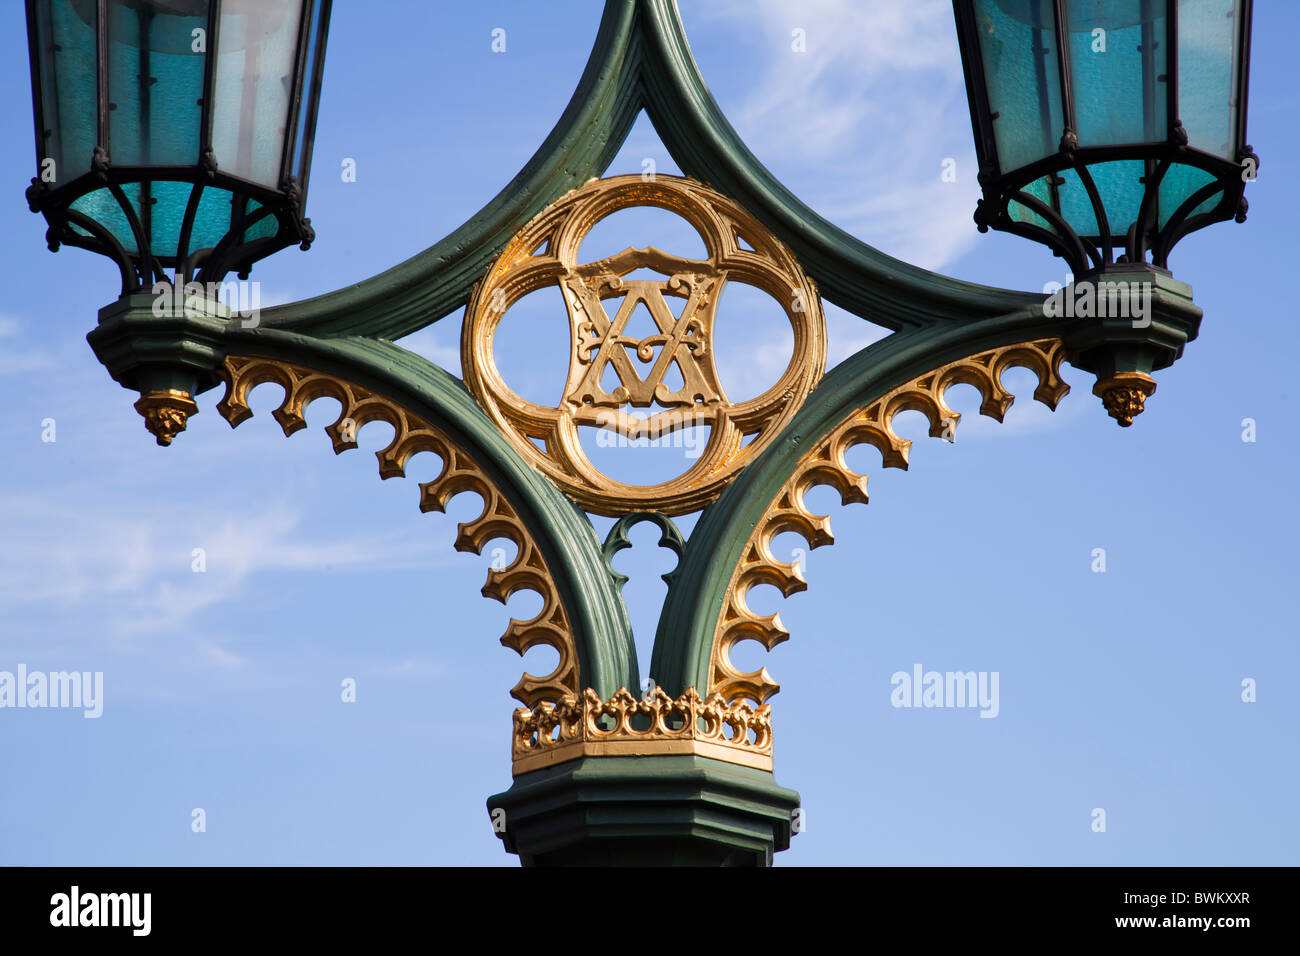 Royal Emblem on lampost at Westminster - Stock Image